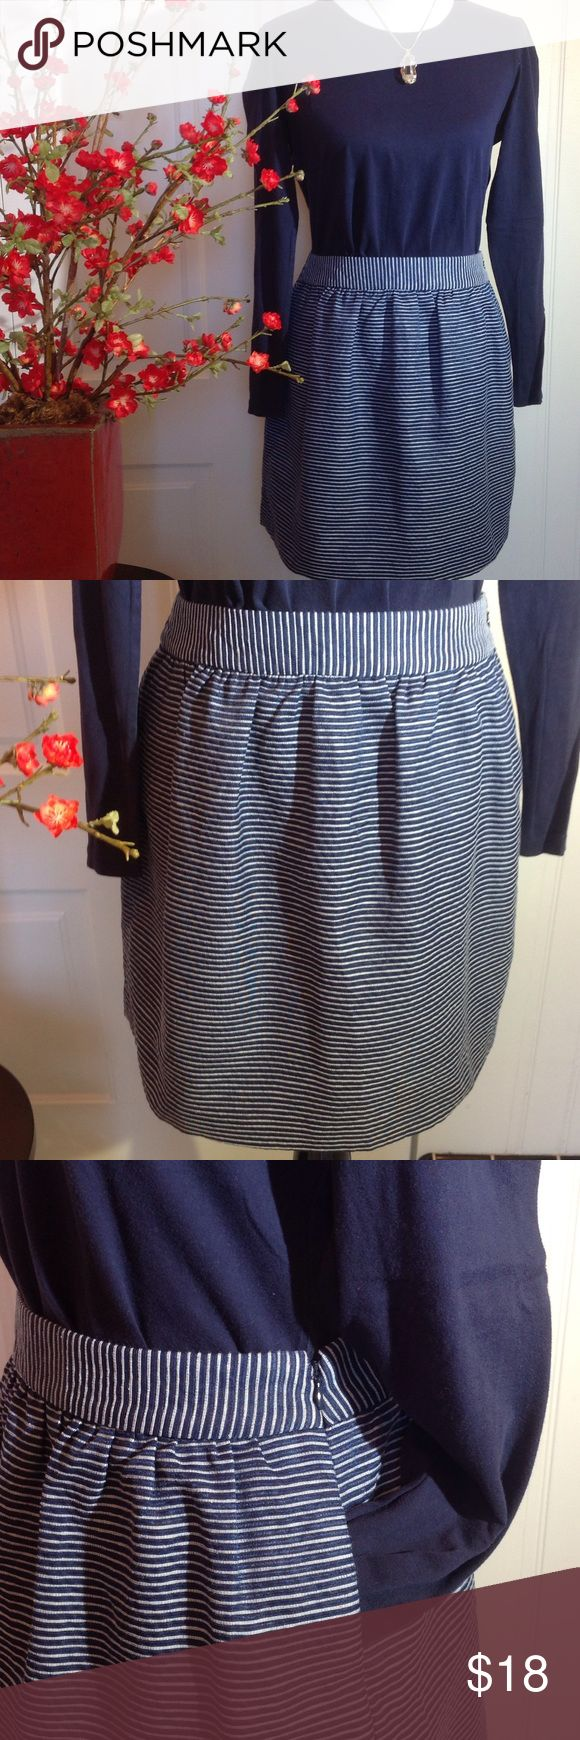 """Banana Republic Navy Stripe Skirt 69% Polyester, 31% Cotton. Lining: 100% Polyester.  Durable Fabric in Navy and White Stripes. Two side pockets and left side zipper. Waistline approx. flat lay, 15"""" and approx. 18"""" from top of waistband to hemline.  Good quality pre-owned garment. Banana Republic Skirts"""